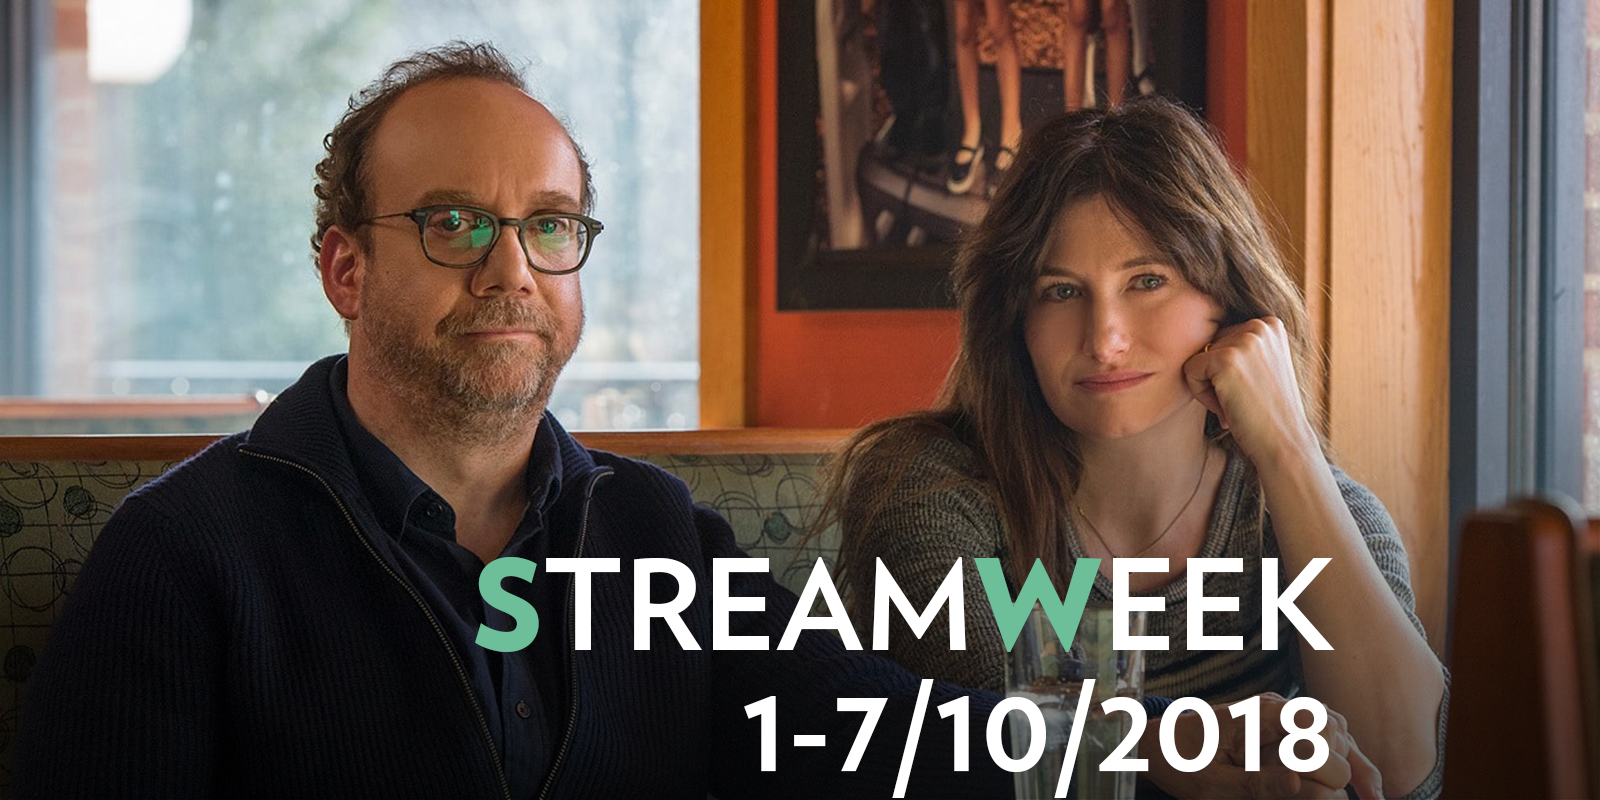 StreamWeek: Private Life è il primo Vero film Netflix